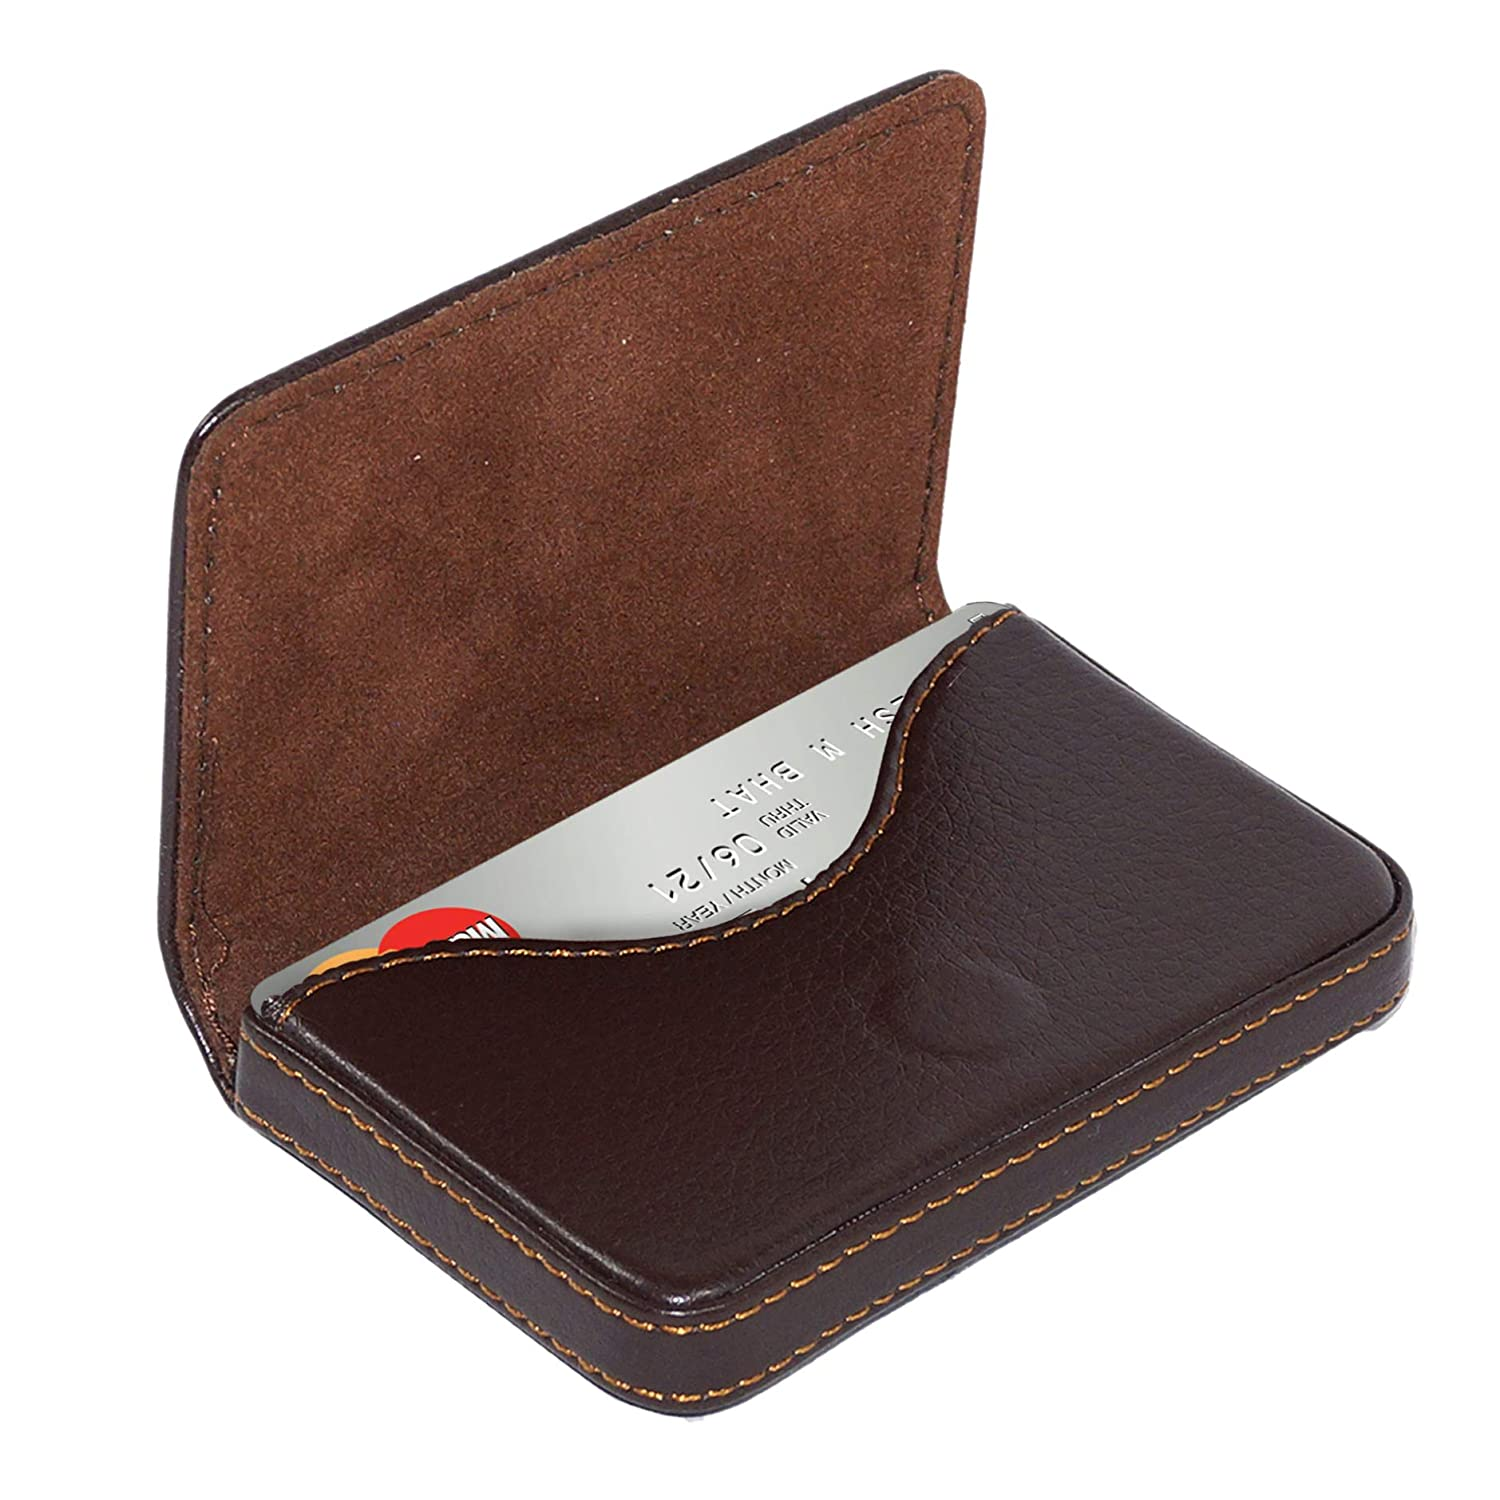 competitive price 3068e c1606 NISUN Leather Pocket Sized Business/Credit/ATM Card Holder case Wallet with  Magnetic Shut for Gift Brown (1 Pack)